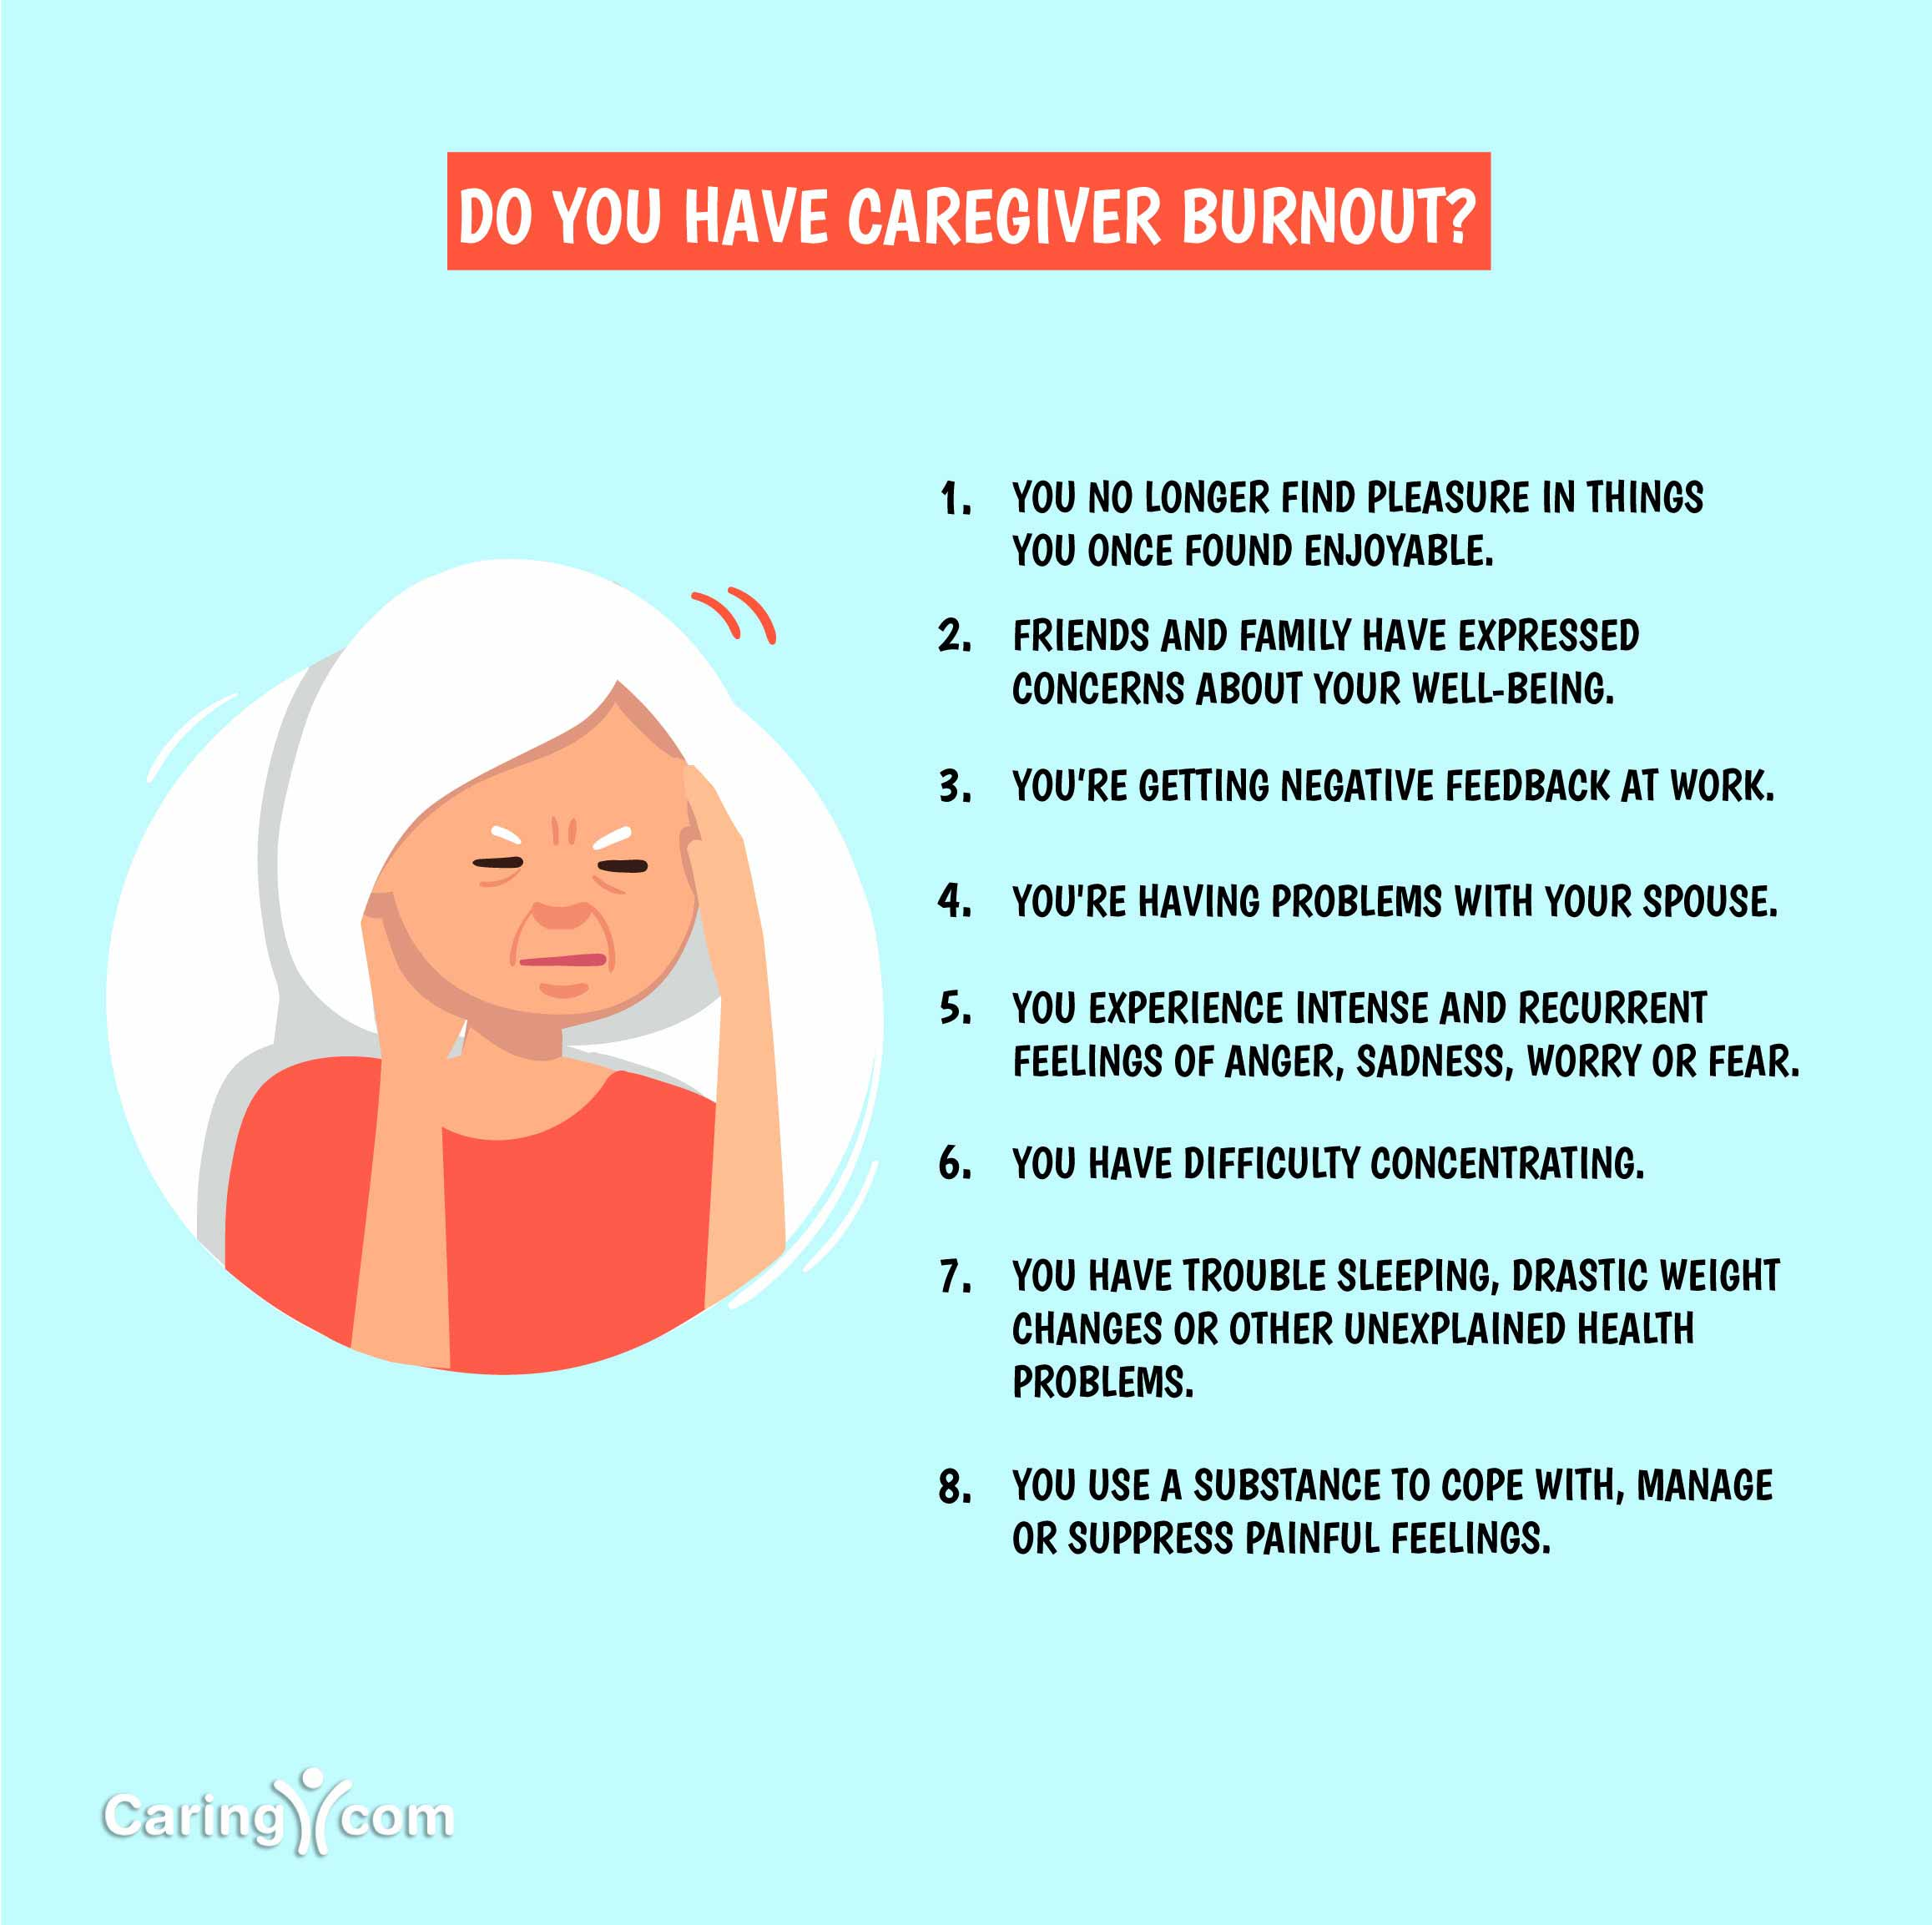 Self Care Tips To Ease Caregiver Burnout